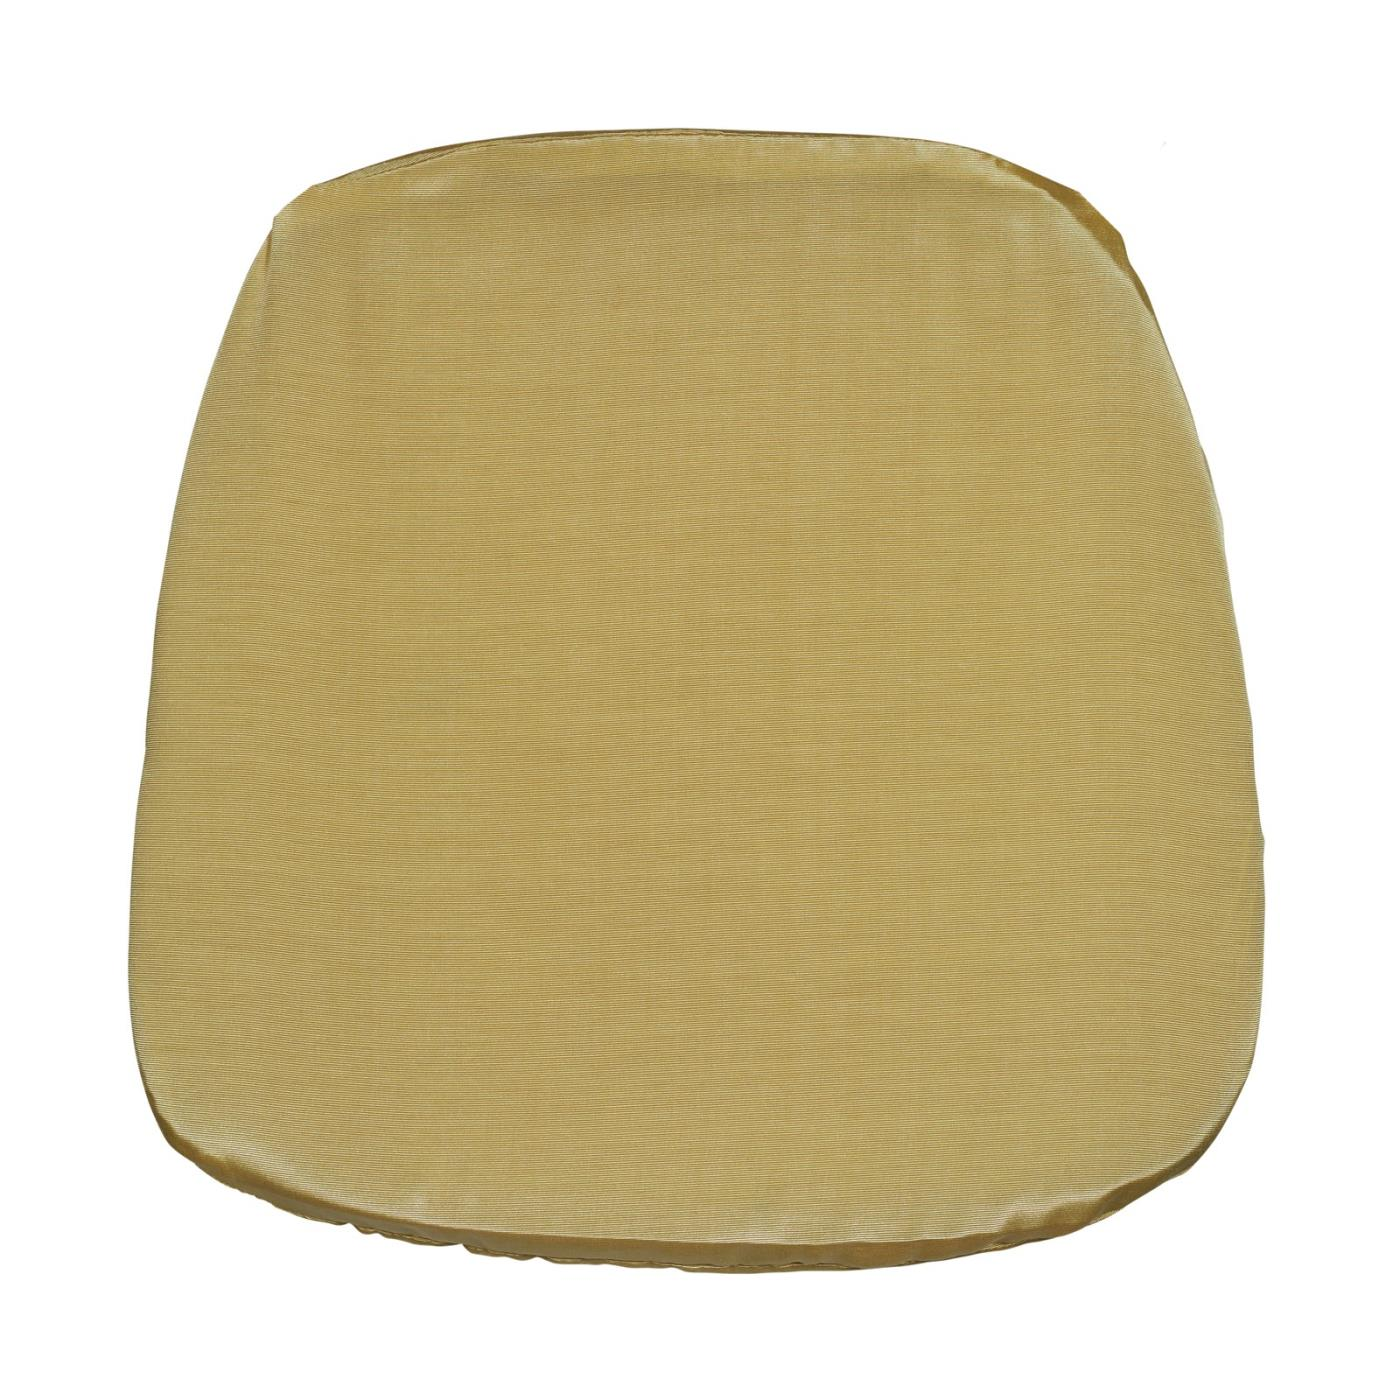 Bengaline Seat Cushion - Maize